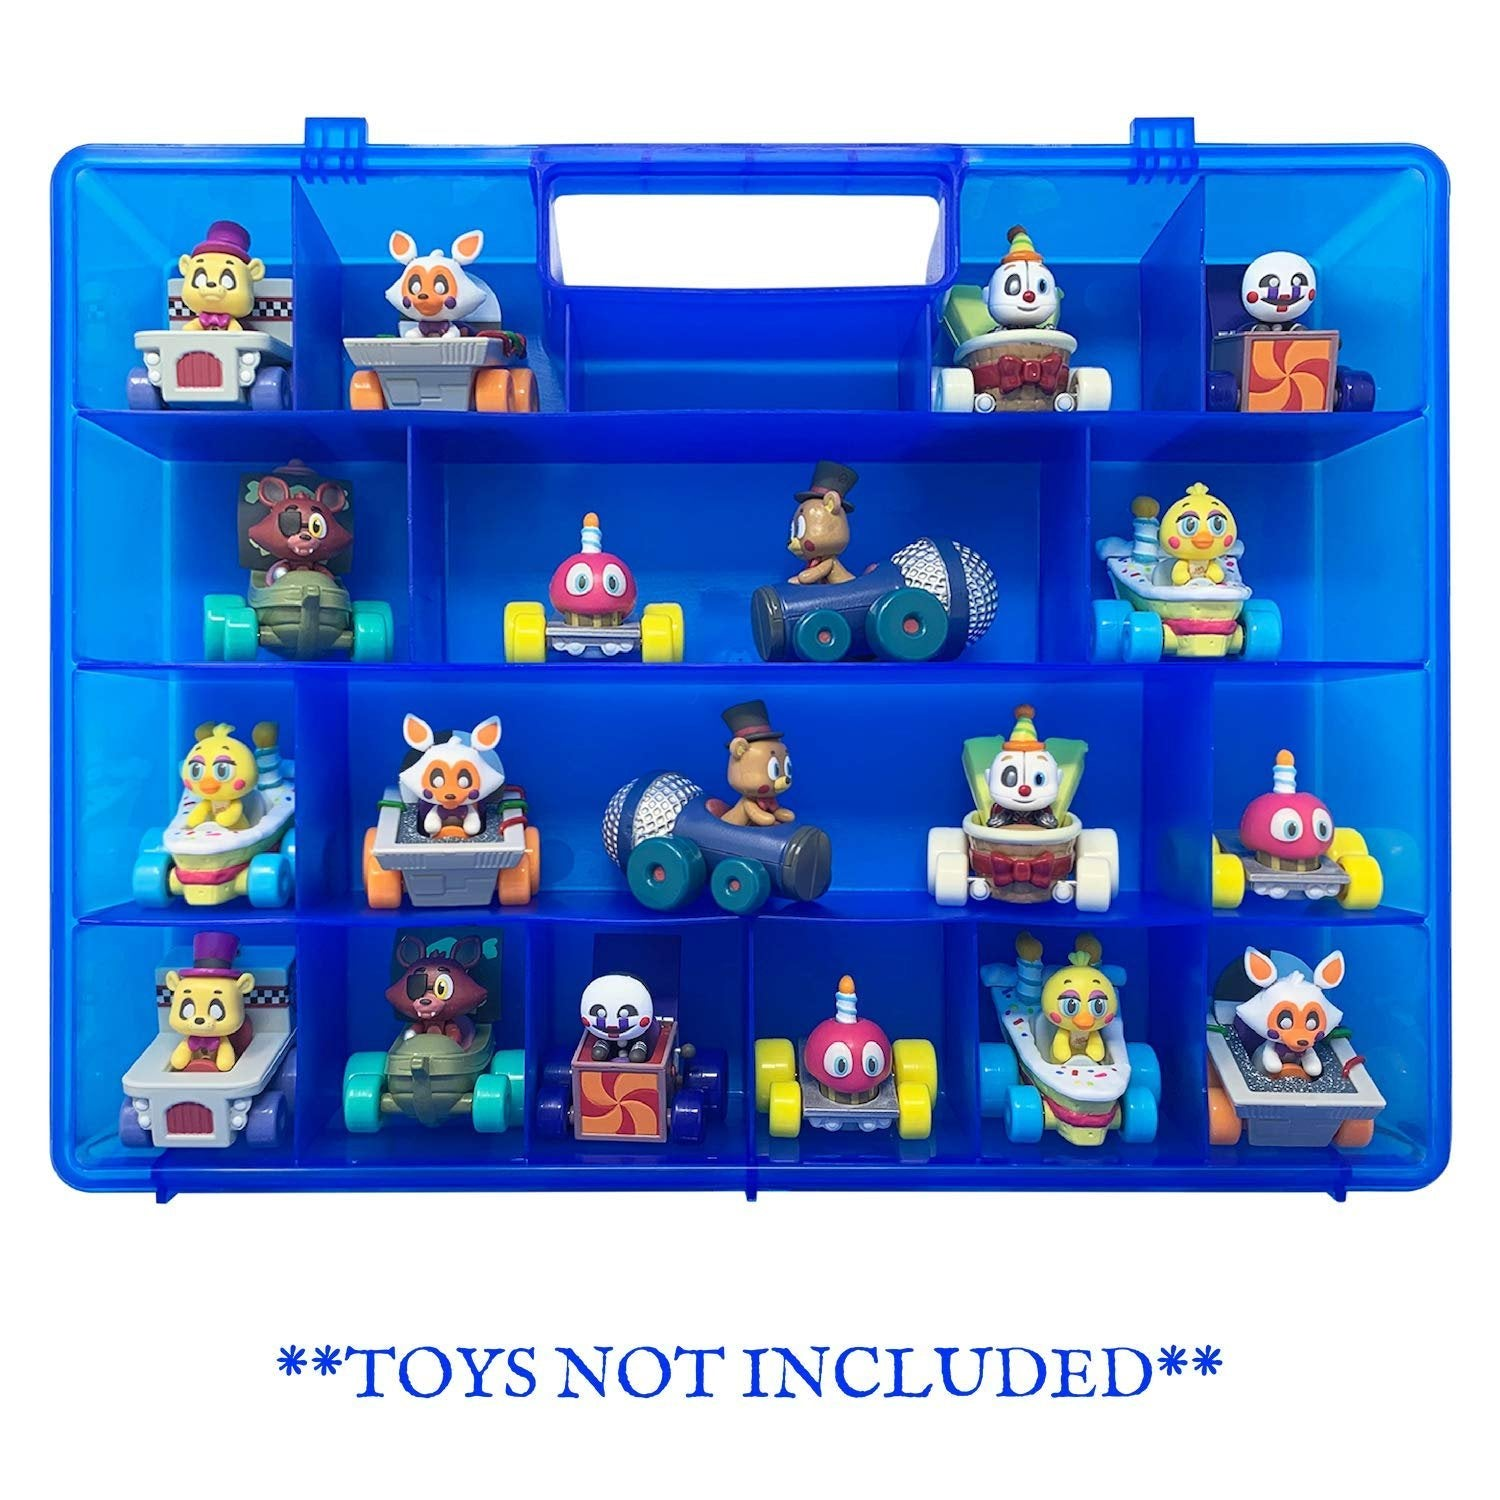 Life Made Better Strengthened Toy Organizer & Protective Case in Blue, Compatible with Funko Racers, Multiple Compartments for Organizing and Storing Figures